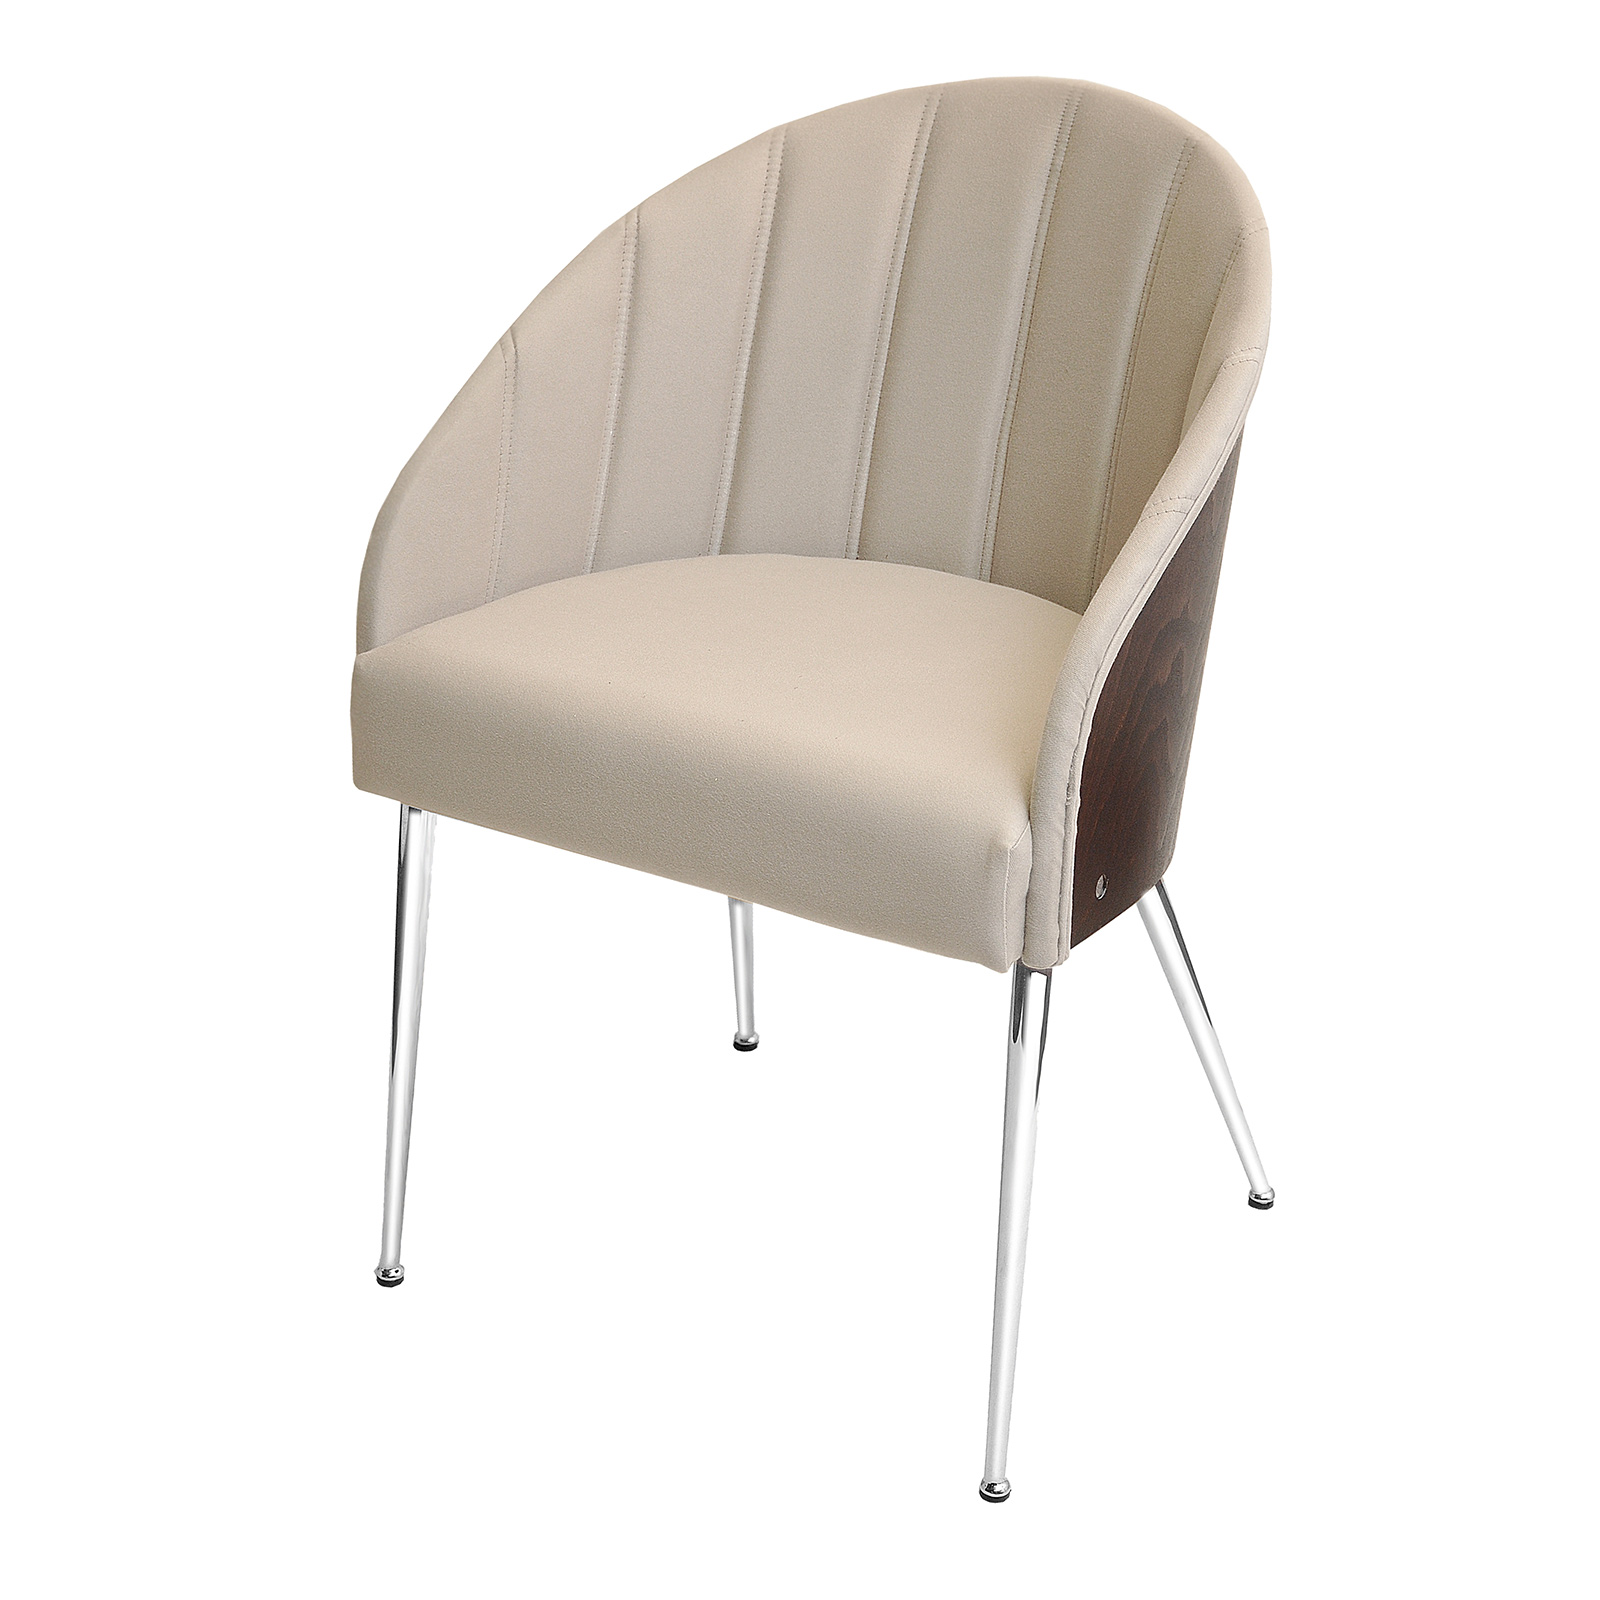 Florida Seating CN-EMILY DF GR3 chair, lounge, indoor